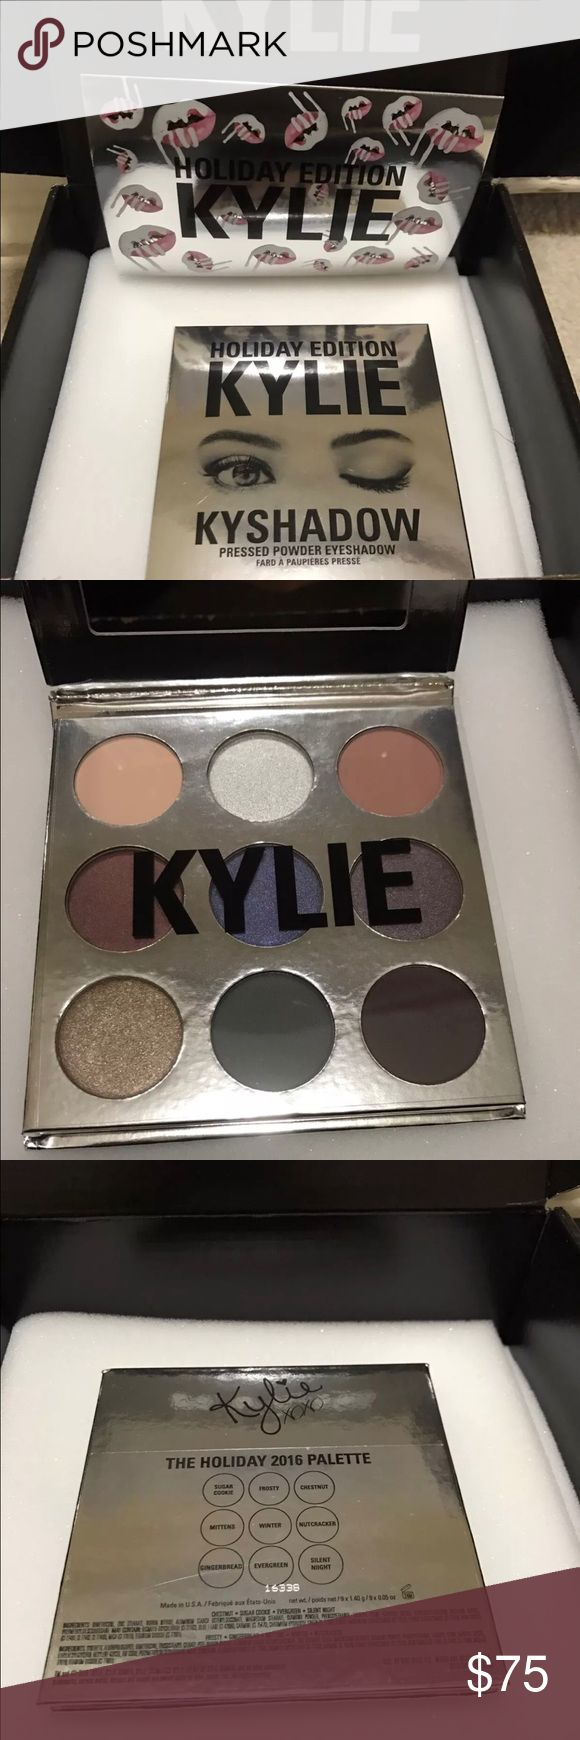 Kylie Jenner Holiday Kyshadow Palette Brand new in box! No trades or offers!! Kylie Cosmetics Makeup Eyeshadow